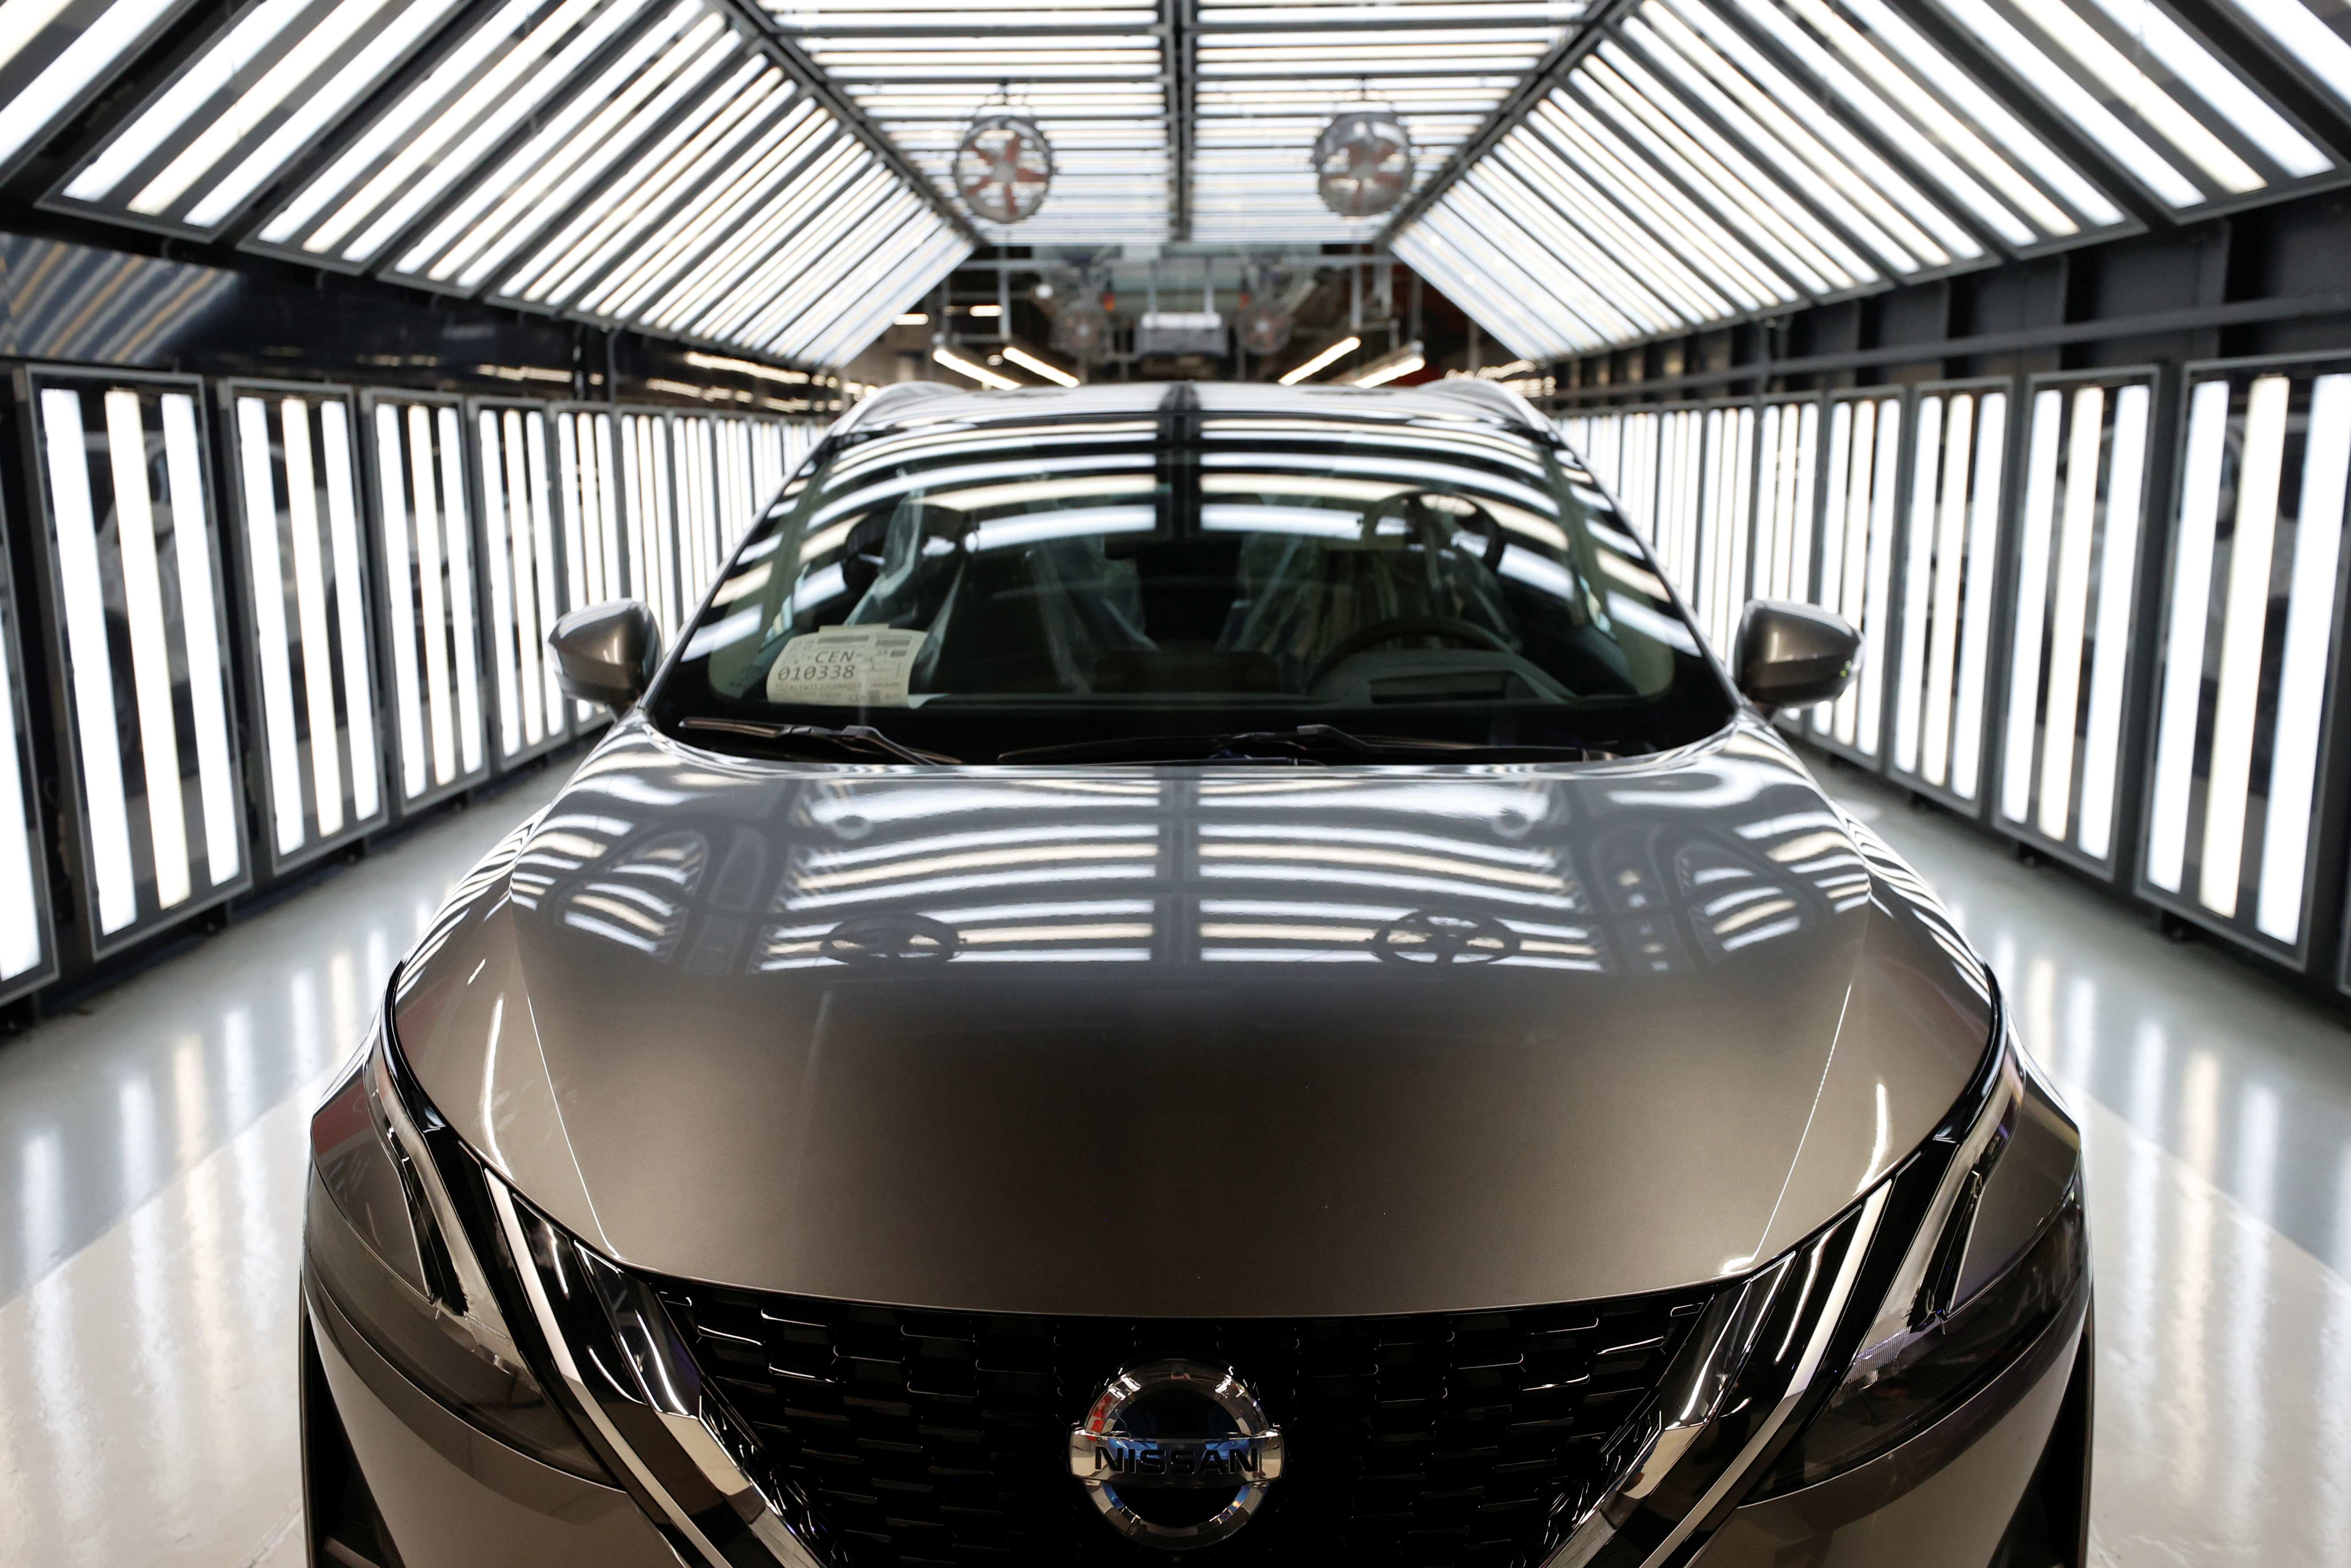 A Nissan Qashqai is seen ahead of a news conference at Nissan's Sunderland plant in Sunderland, Britain, July 1, 2021. REUTERS/Phil Noble